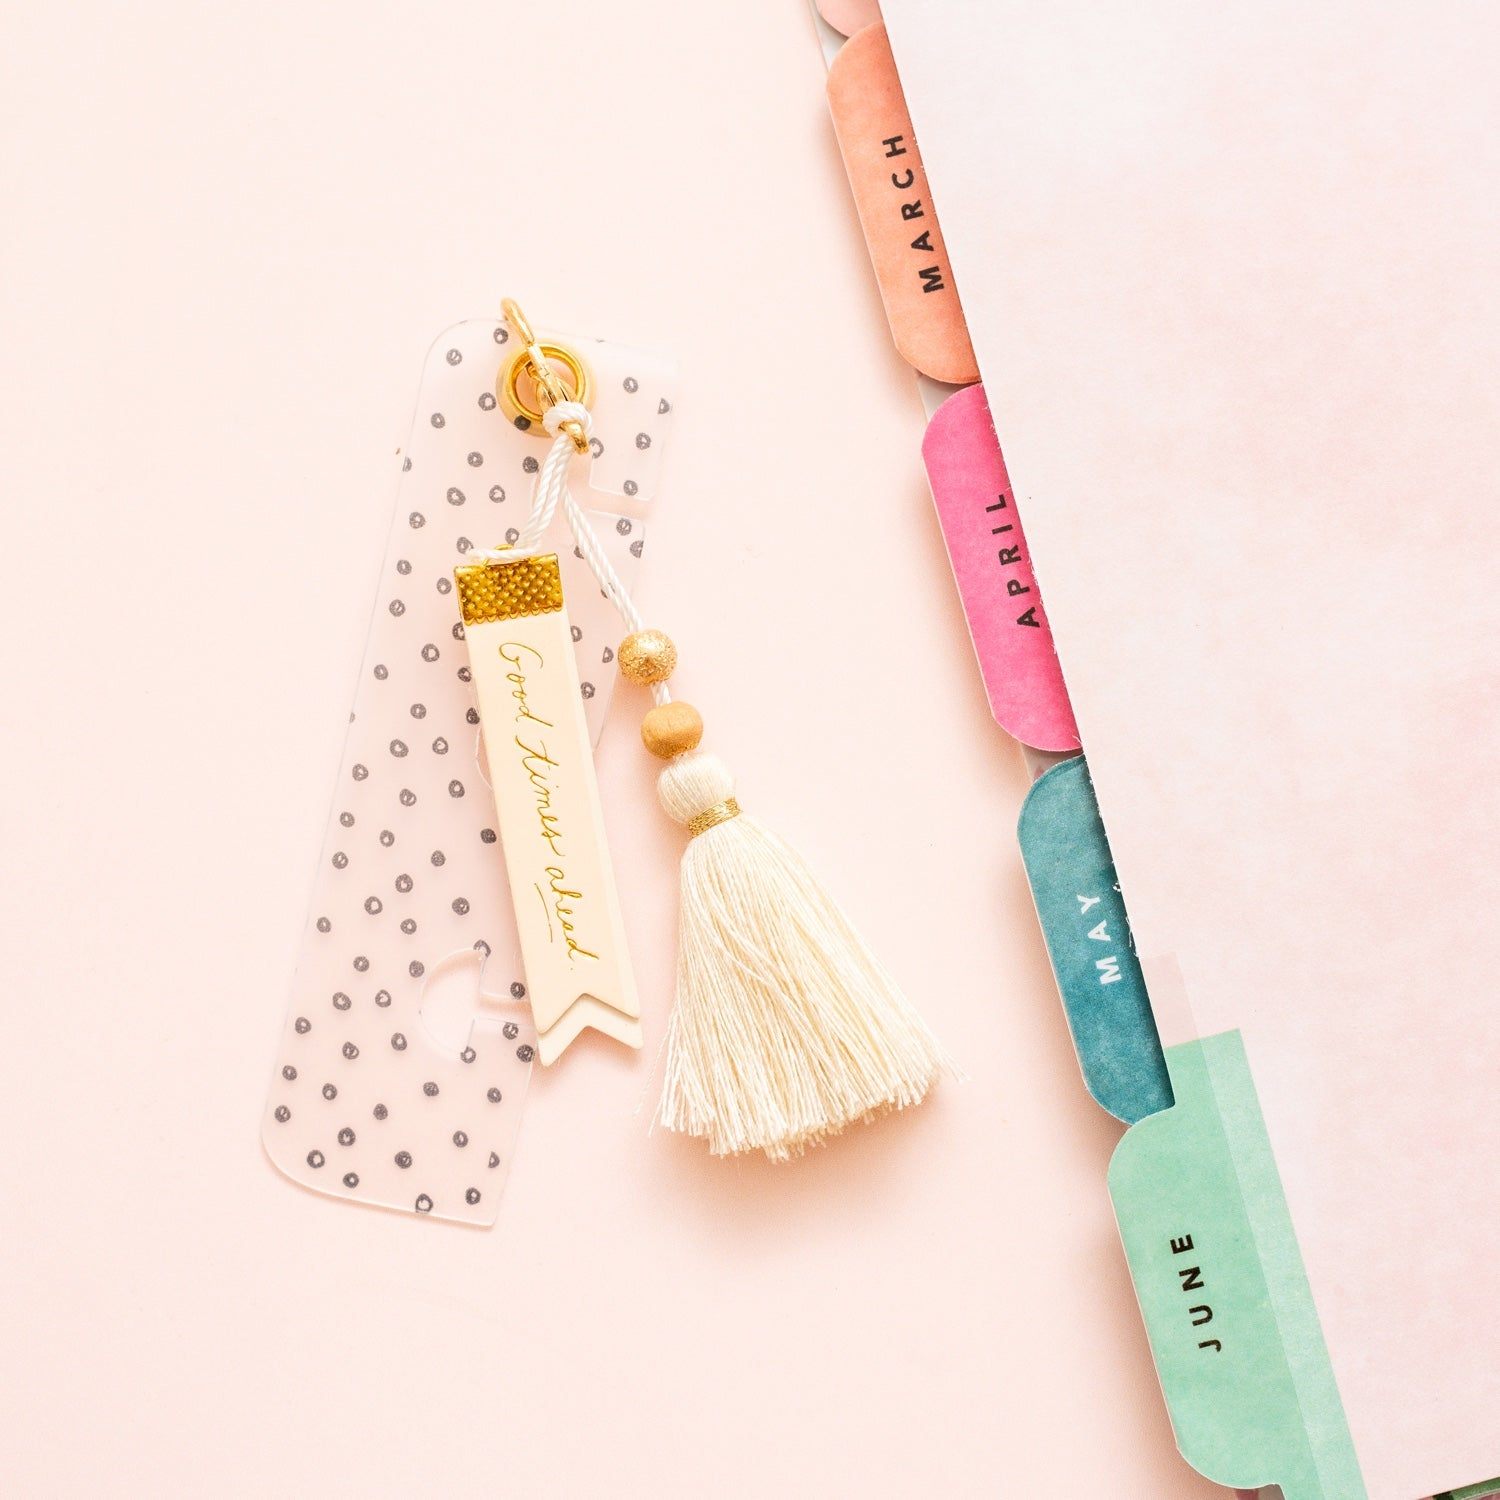 MAGGIE HOLMES DAY-TO-DAY CHARM BOOKMARK : BANNER